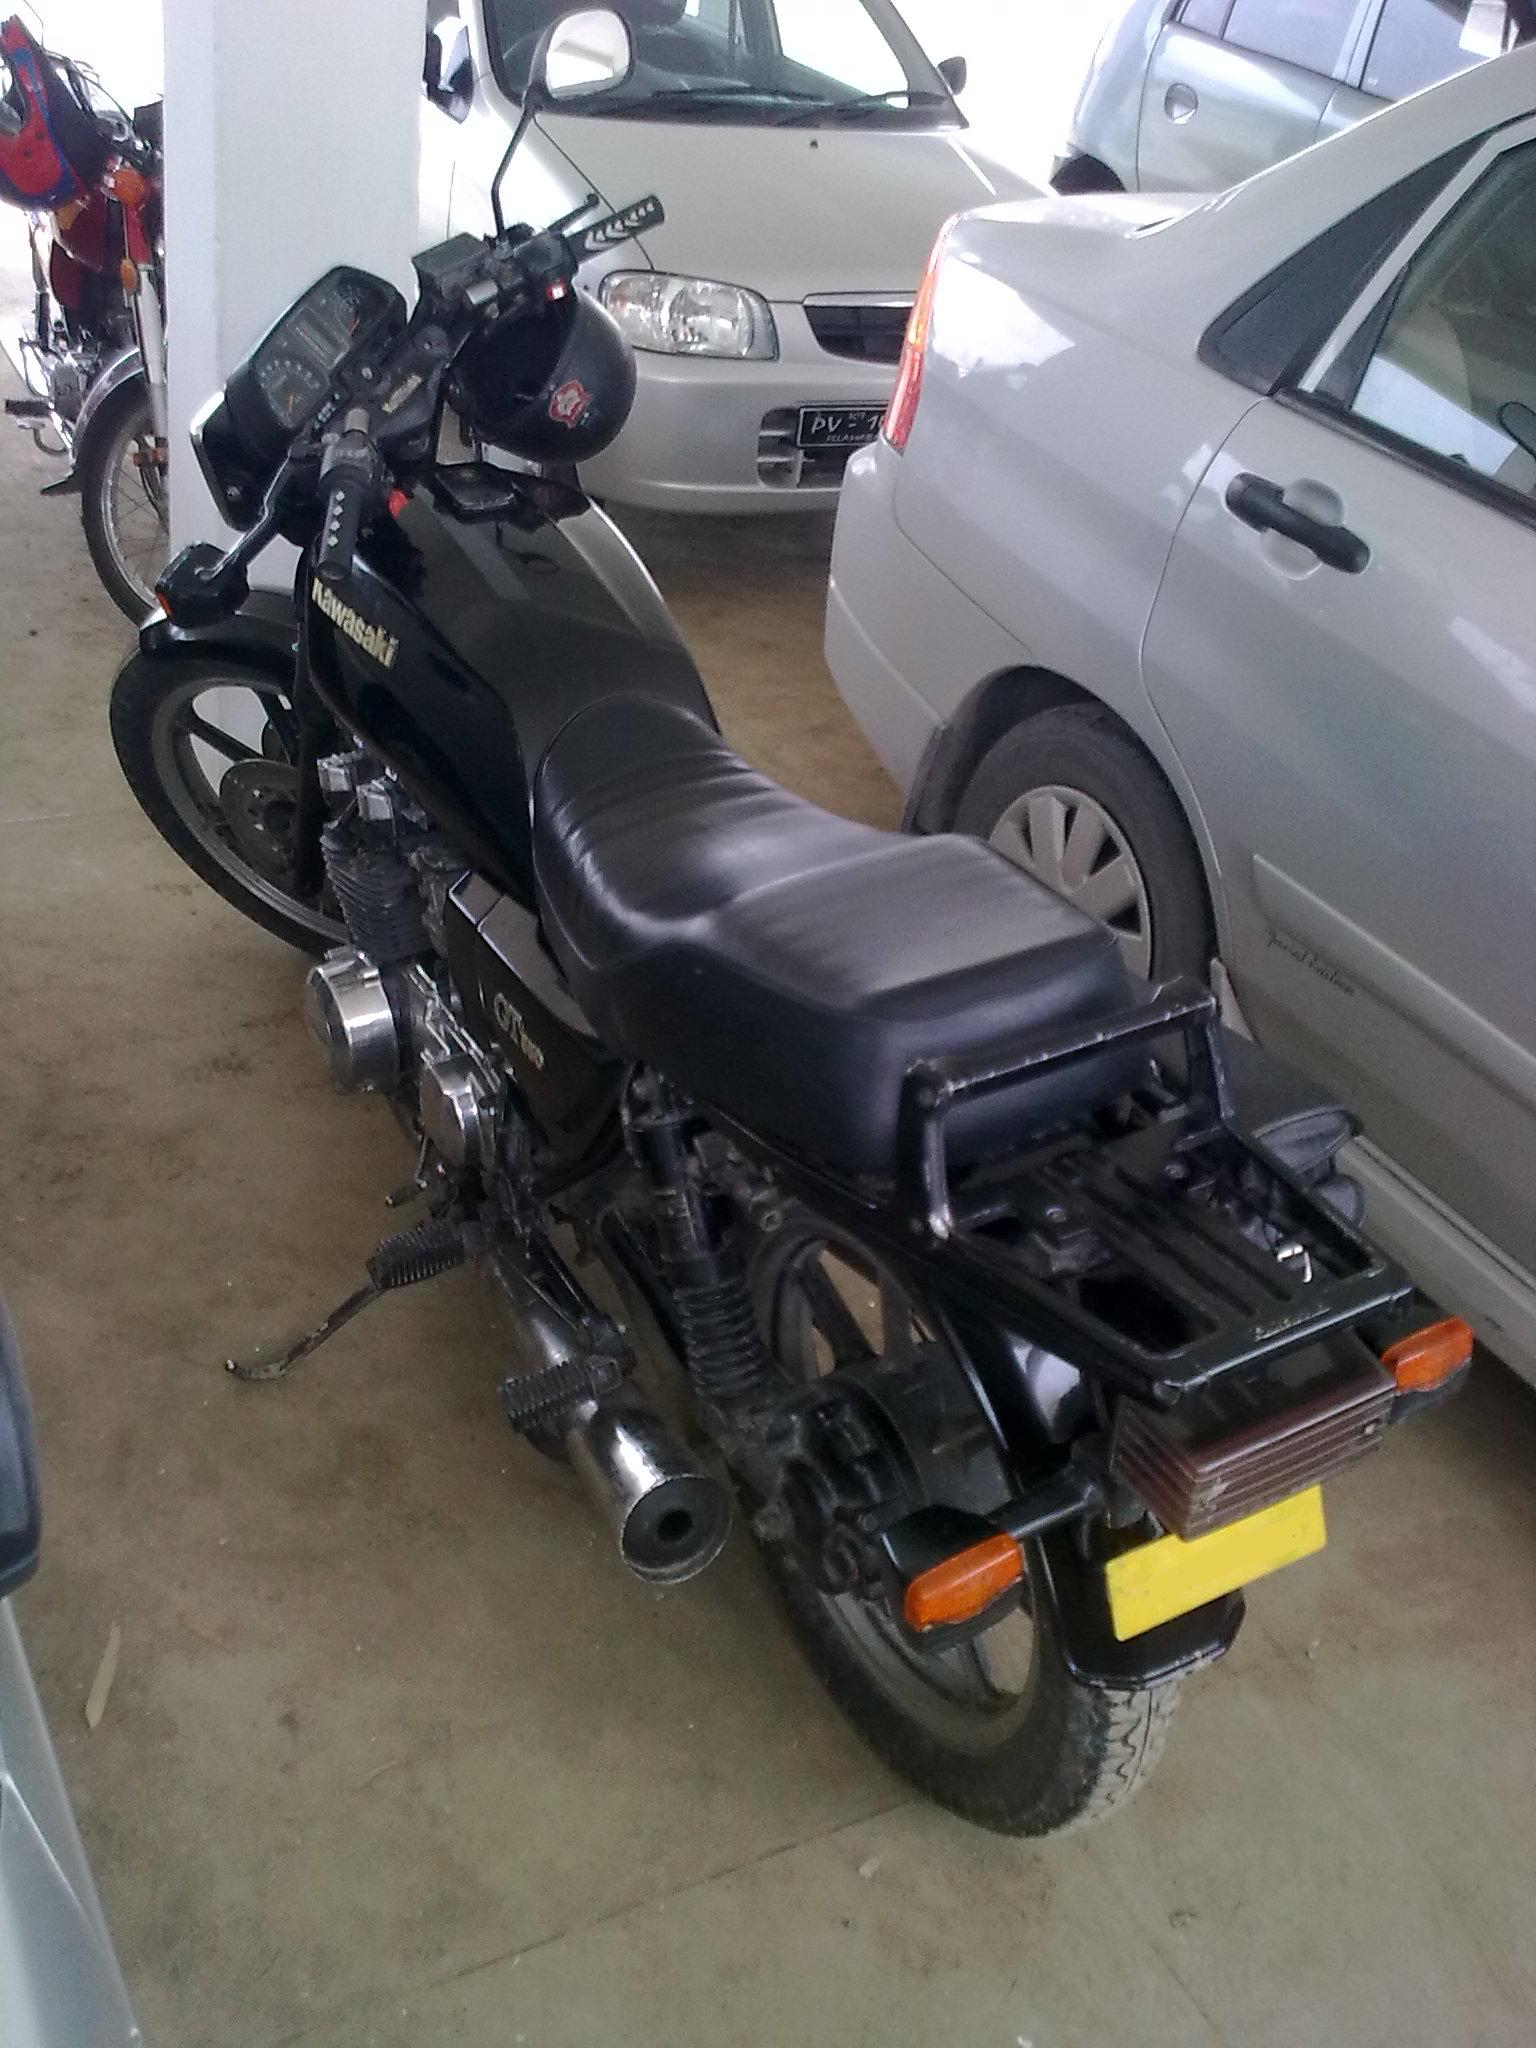 Kawasaki Other of Ahmed555 - 37846